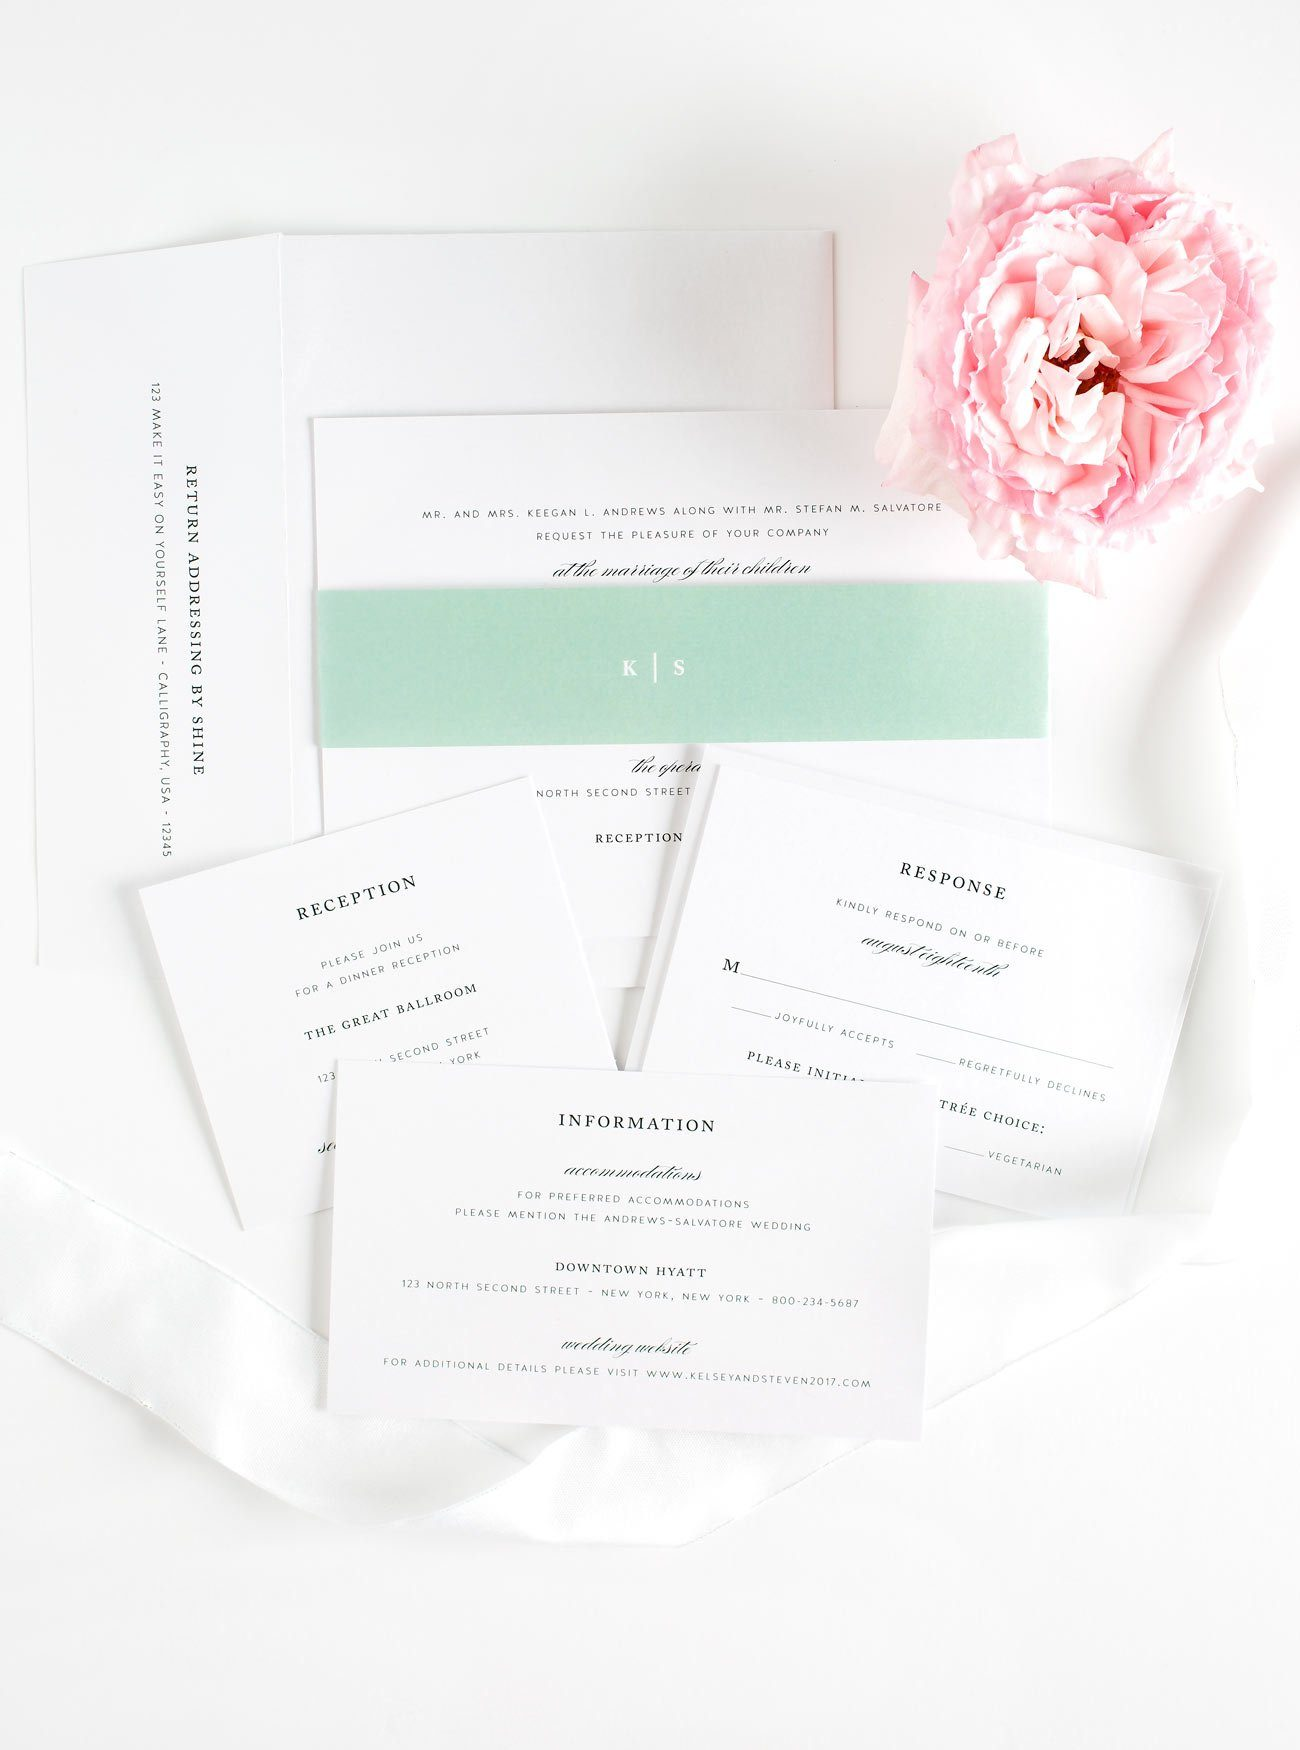 Jade Green Wedding Invitations with a Monogram